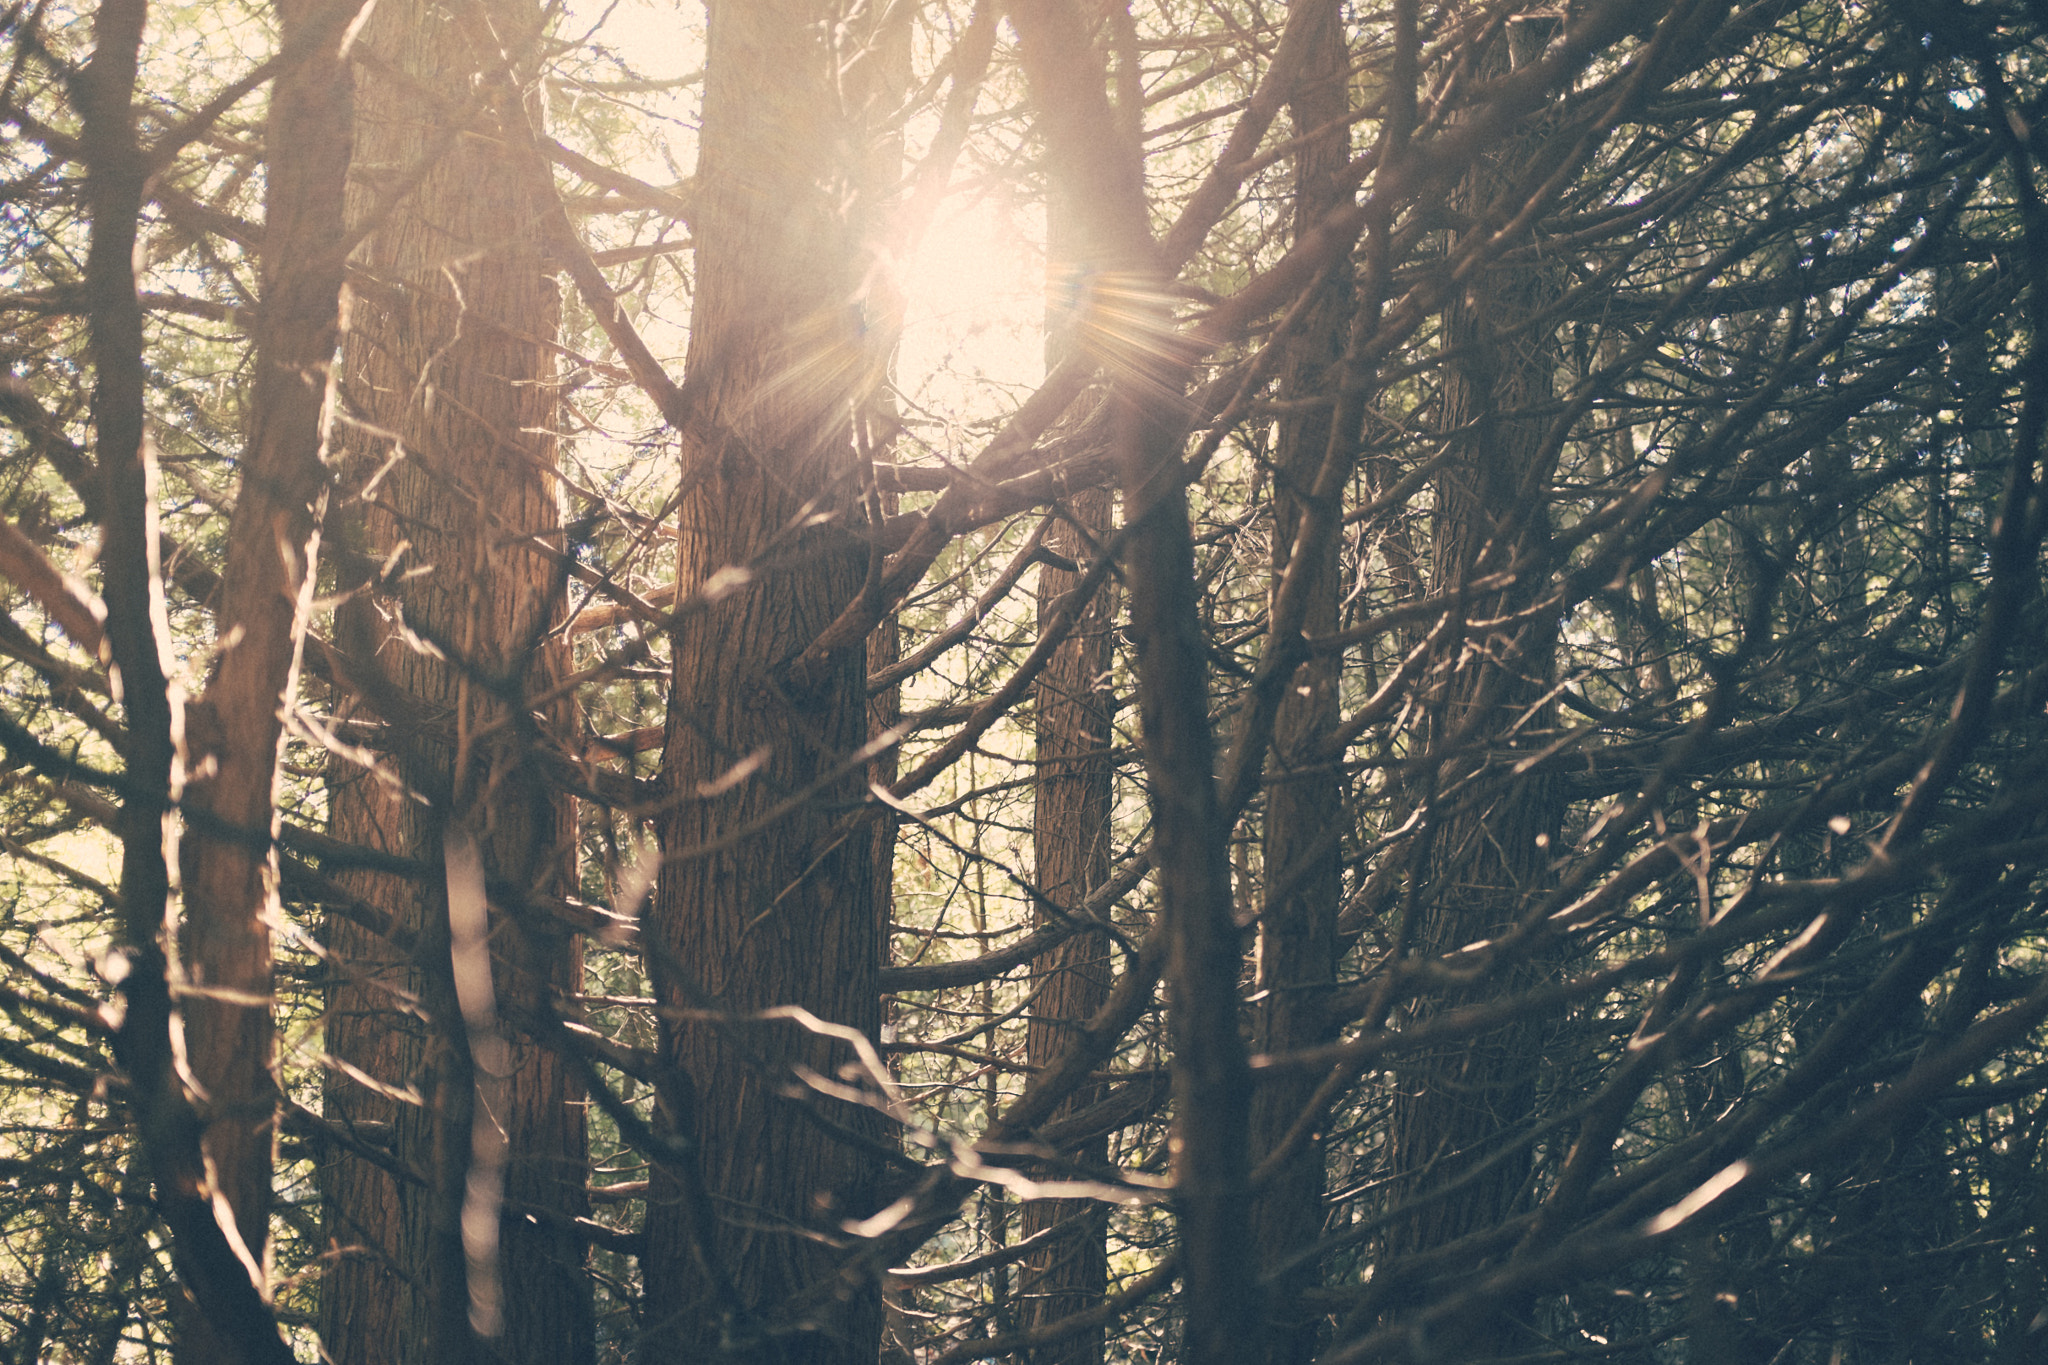 Photograph Morning in the Forest *1202 by Mark Shannon on 500px